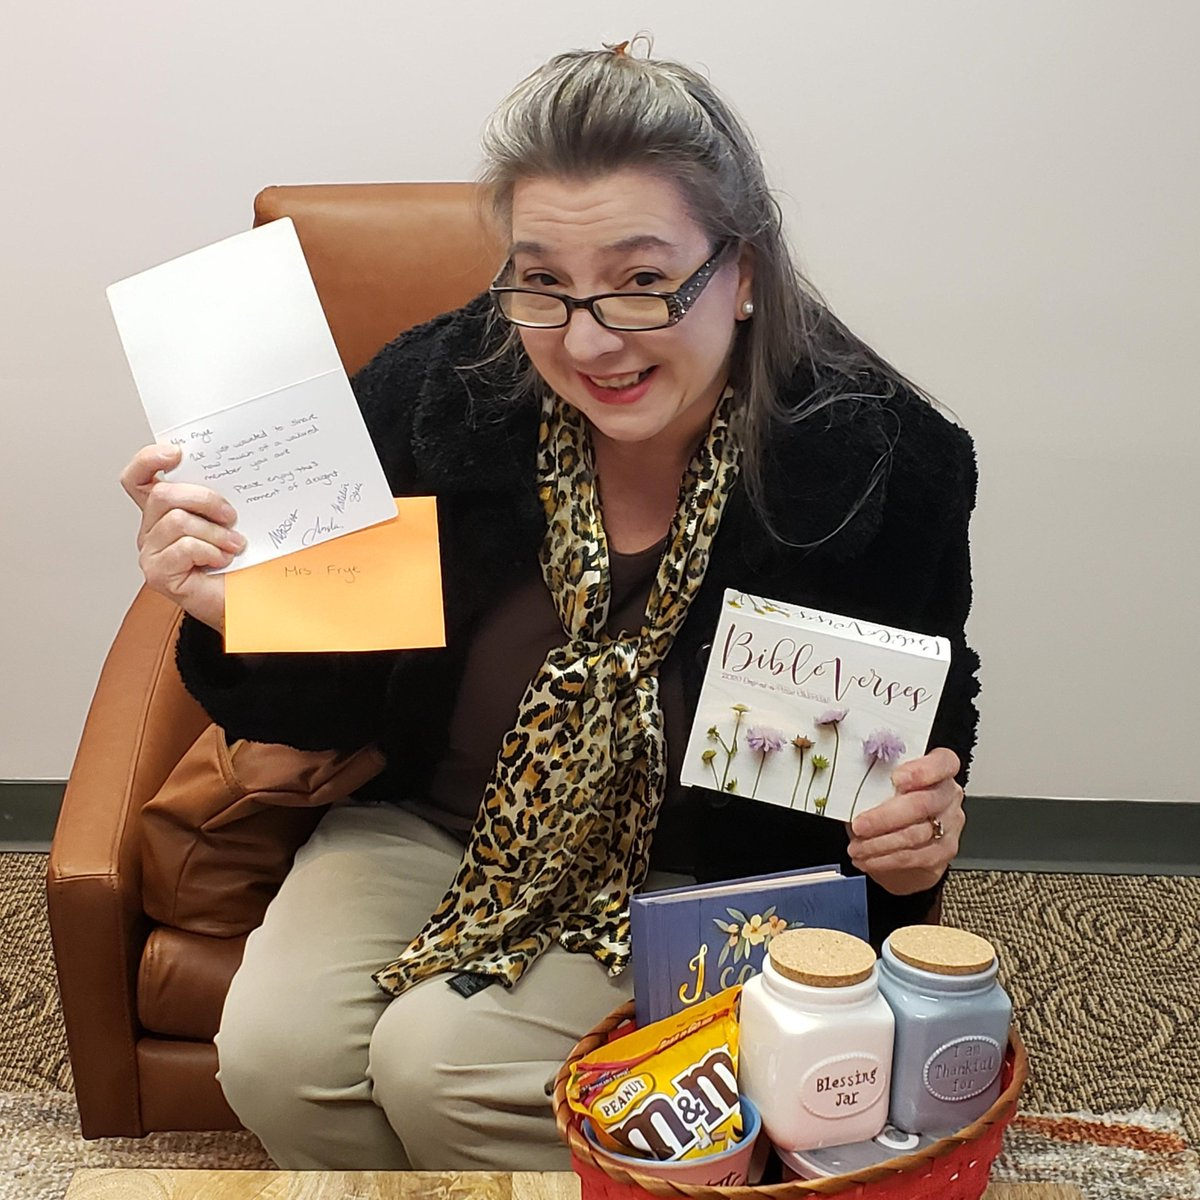 Mrs. Frye is a remarkable lady. She is one of our members in Mobile. Every time she visits our branch, she brightens our day with her positive attitude and delightful smile. Thank you for always bringing the sunshine with you wherever you go! #creditunion #delight #smile